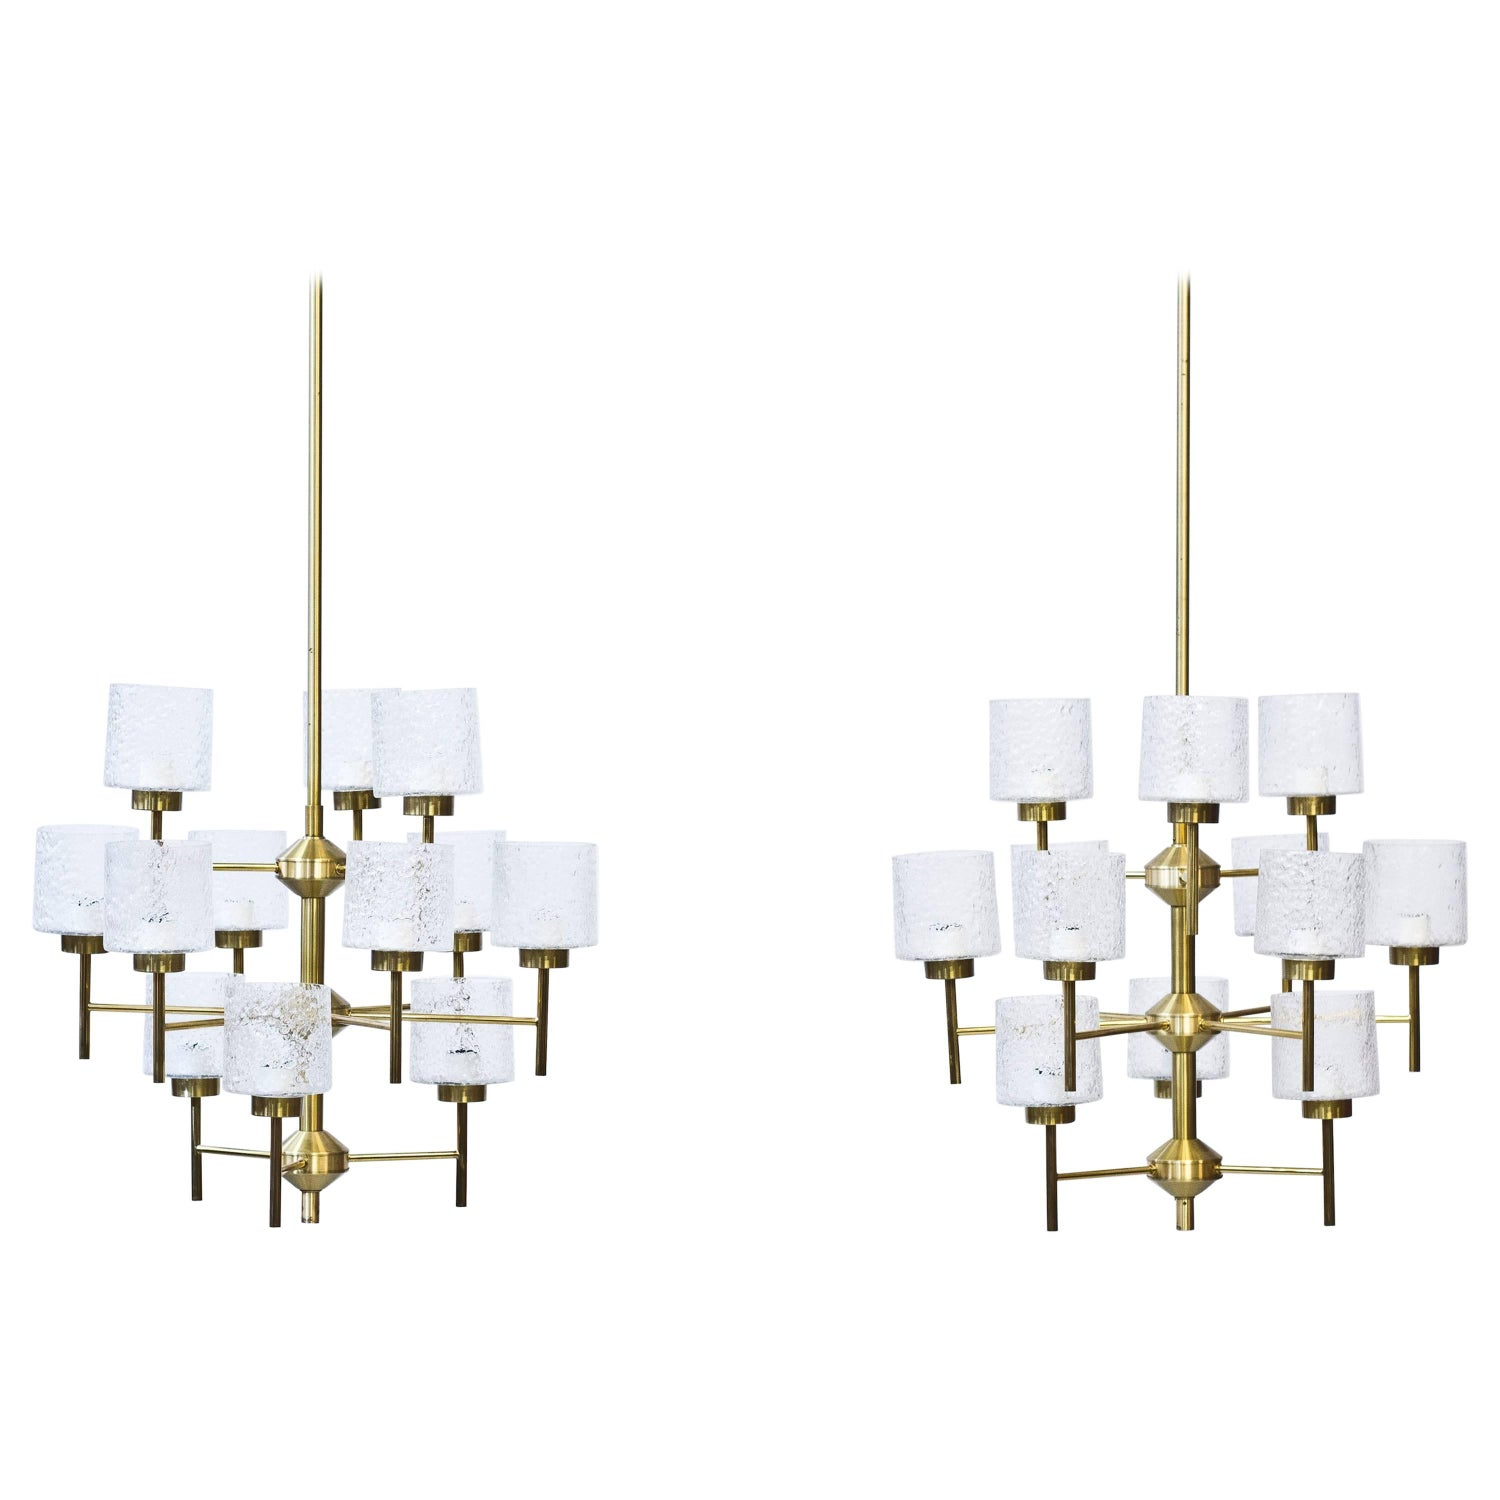 Five swedish chandeliers in brass and glass by holger johansson 1960s chandeliers by holger johansson mozeypictures Choice Image